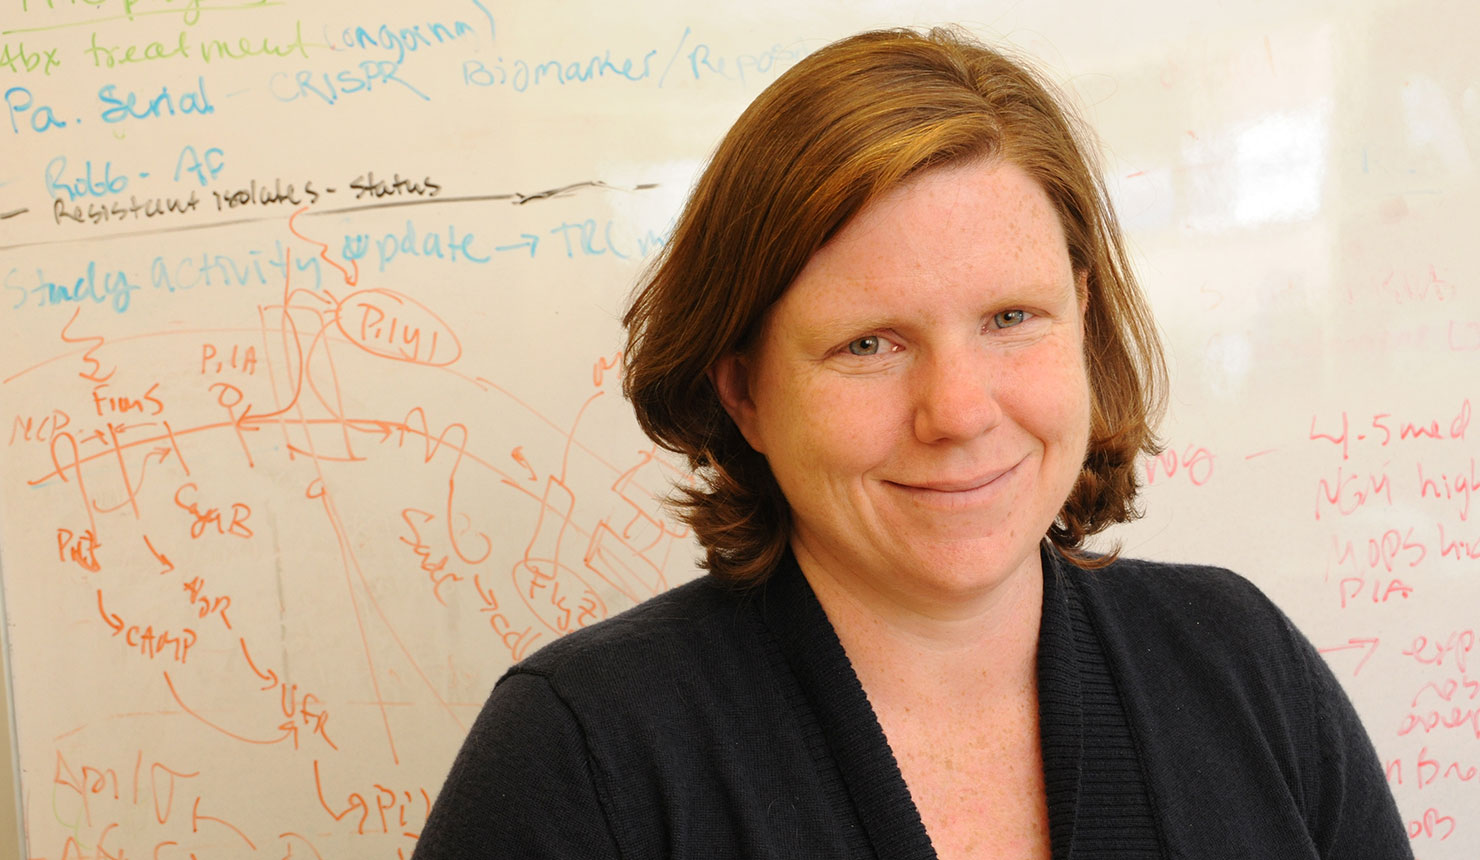 Deborah Hogan, Phd (photo by Jon Gilbert Fox)